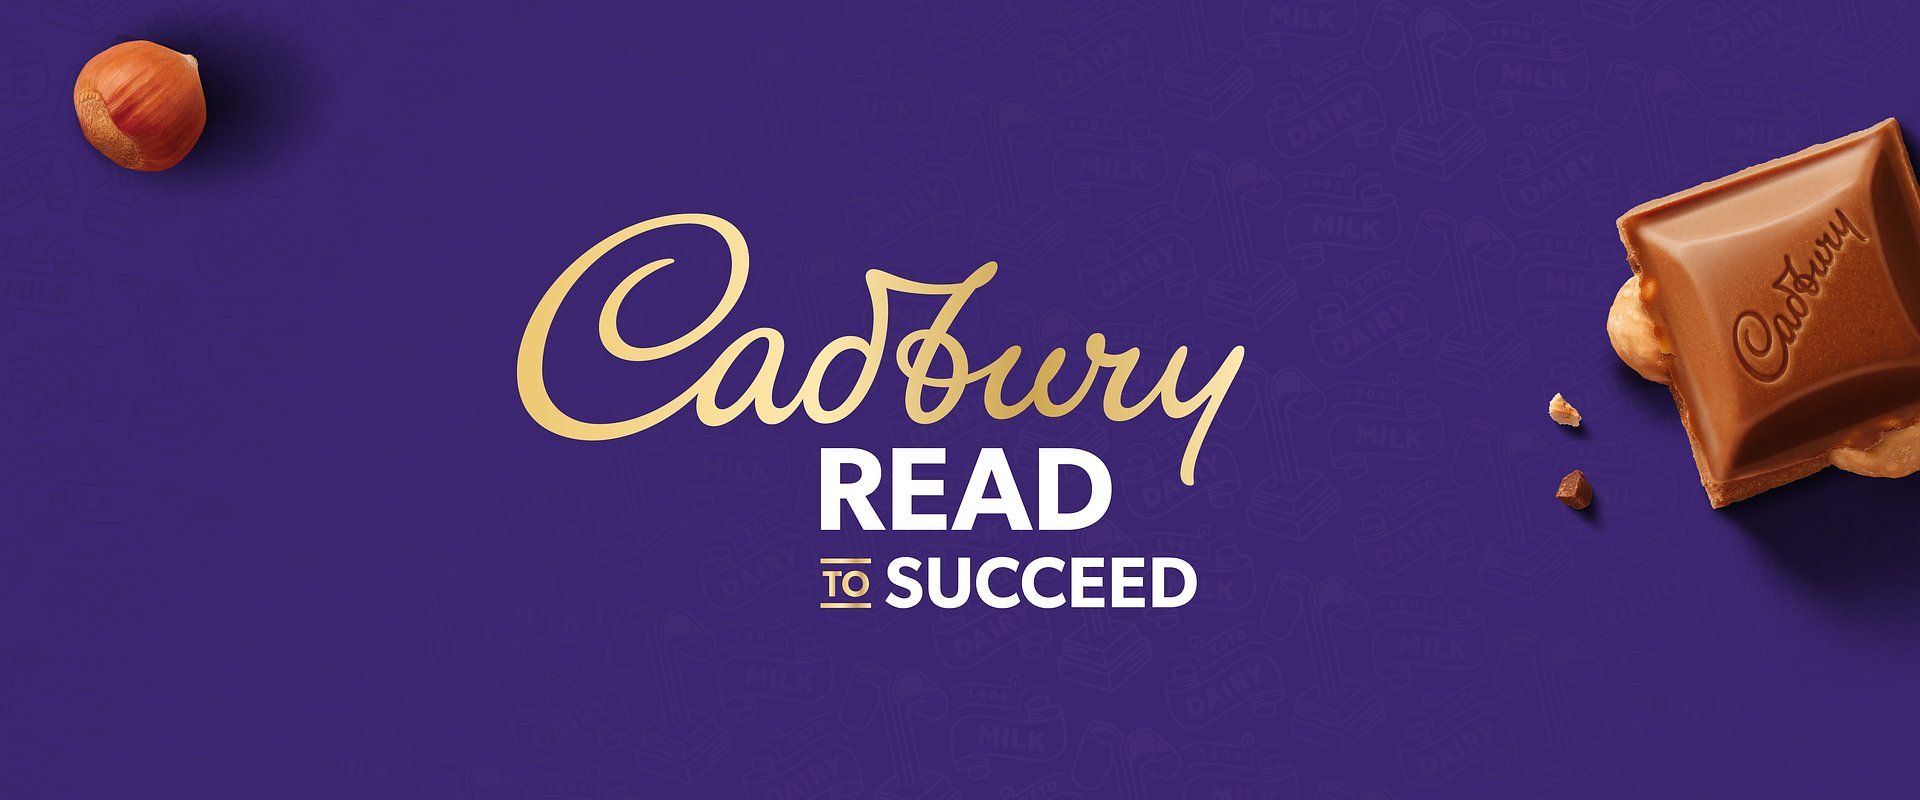 Empowering Children Through Stories In Their Own Language Cadbury Launches Read To Succeed Initiative